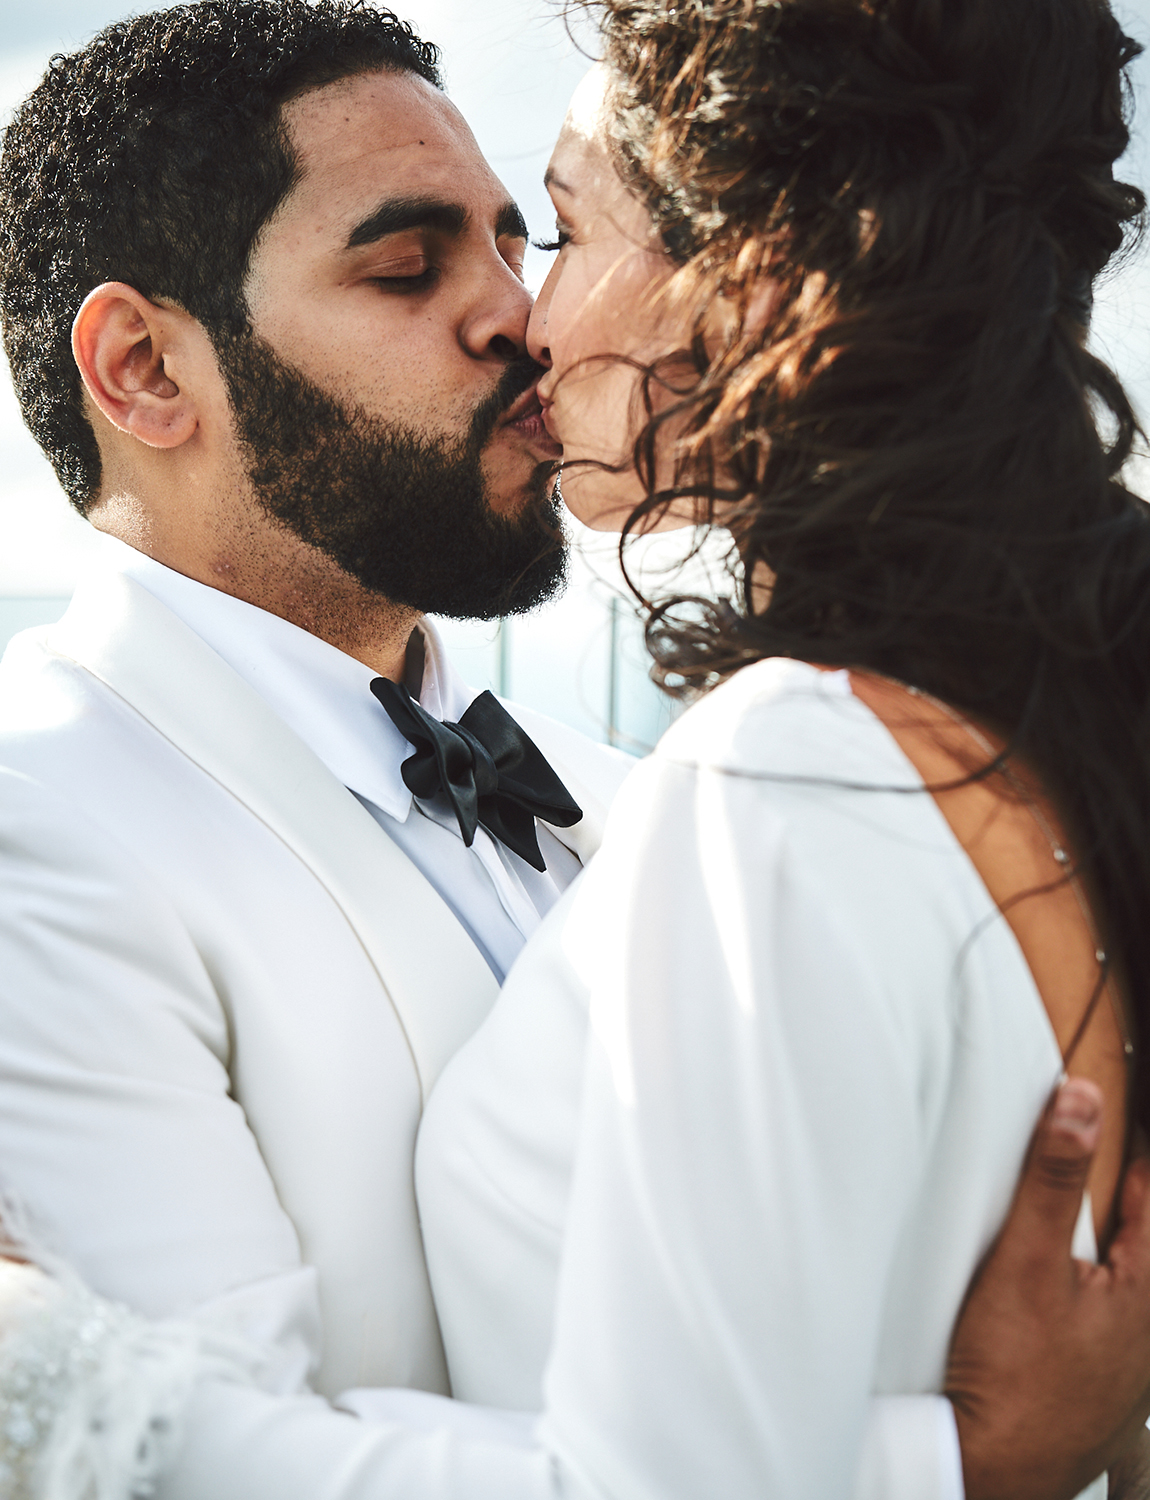 170930_WilliamValeWeddingPhotography_BrooklynWeddingPhotographer_By_BriJohnsonWeddings_0088.jpg